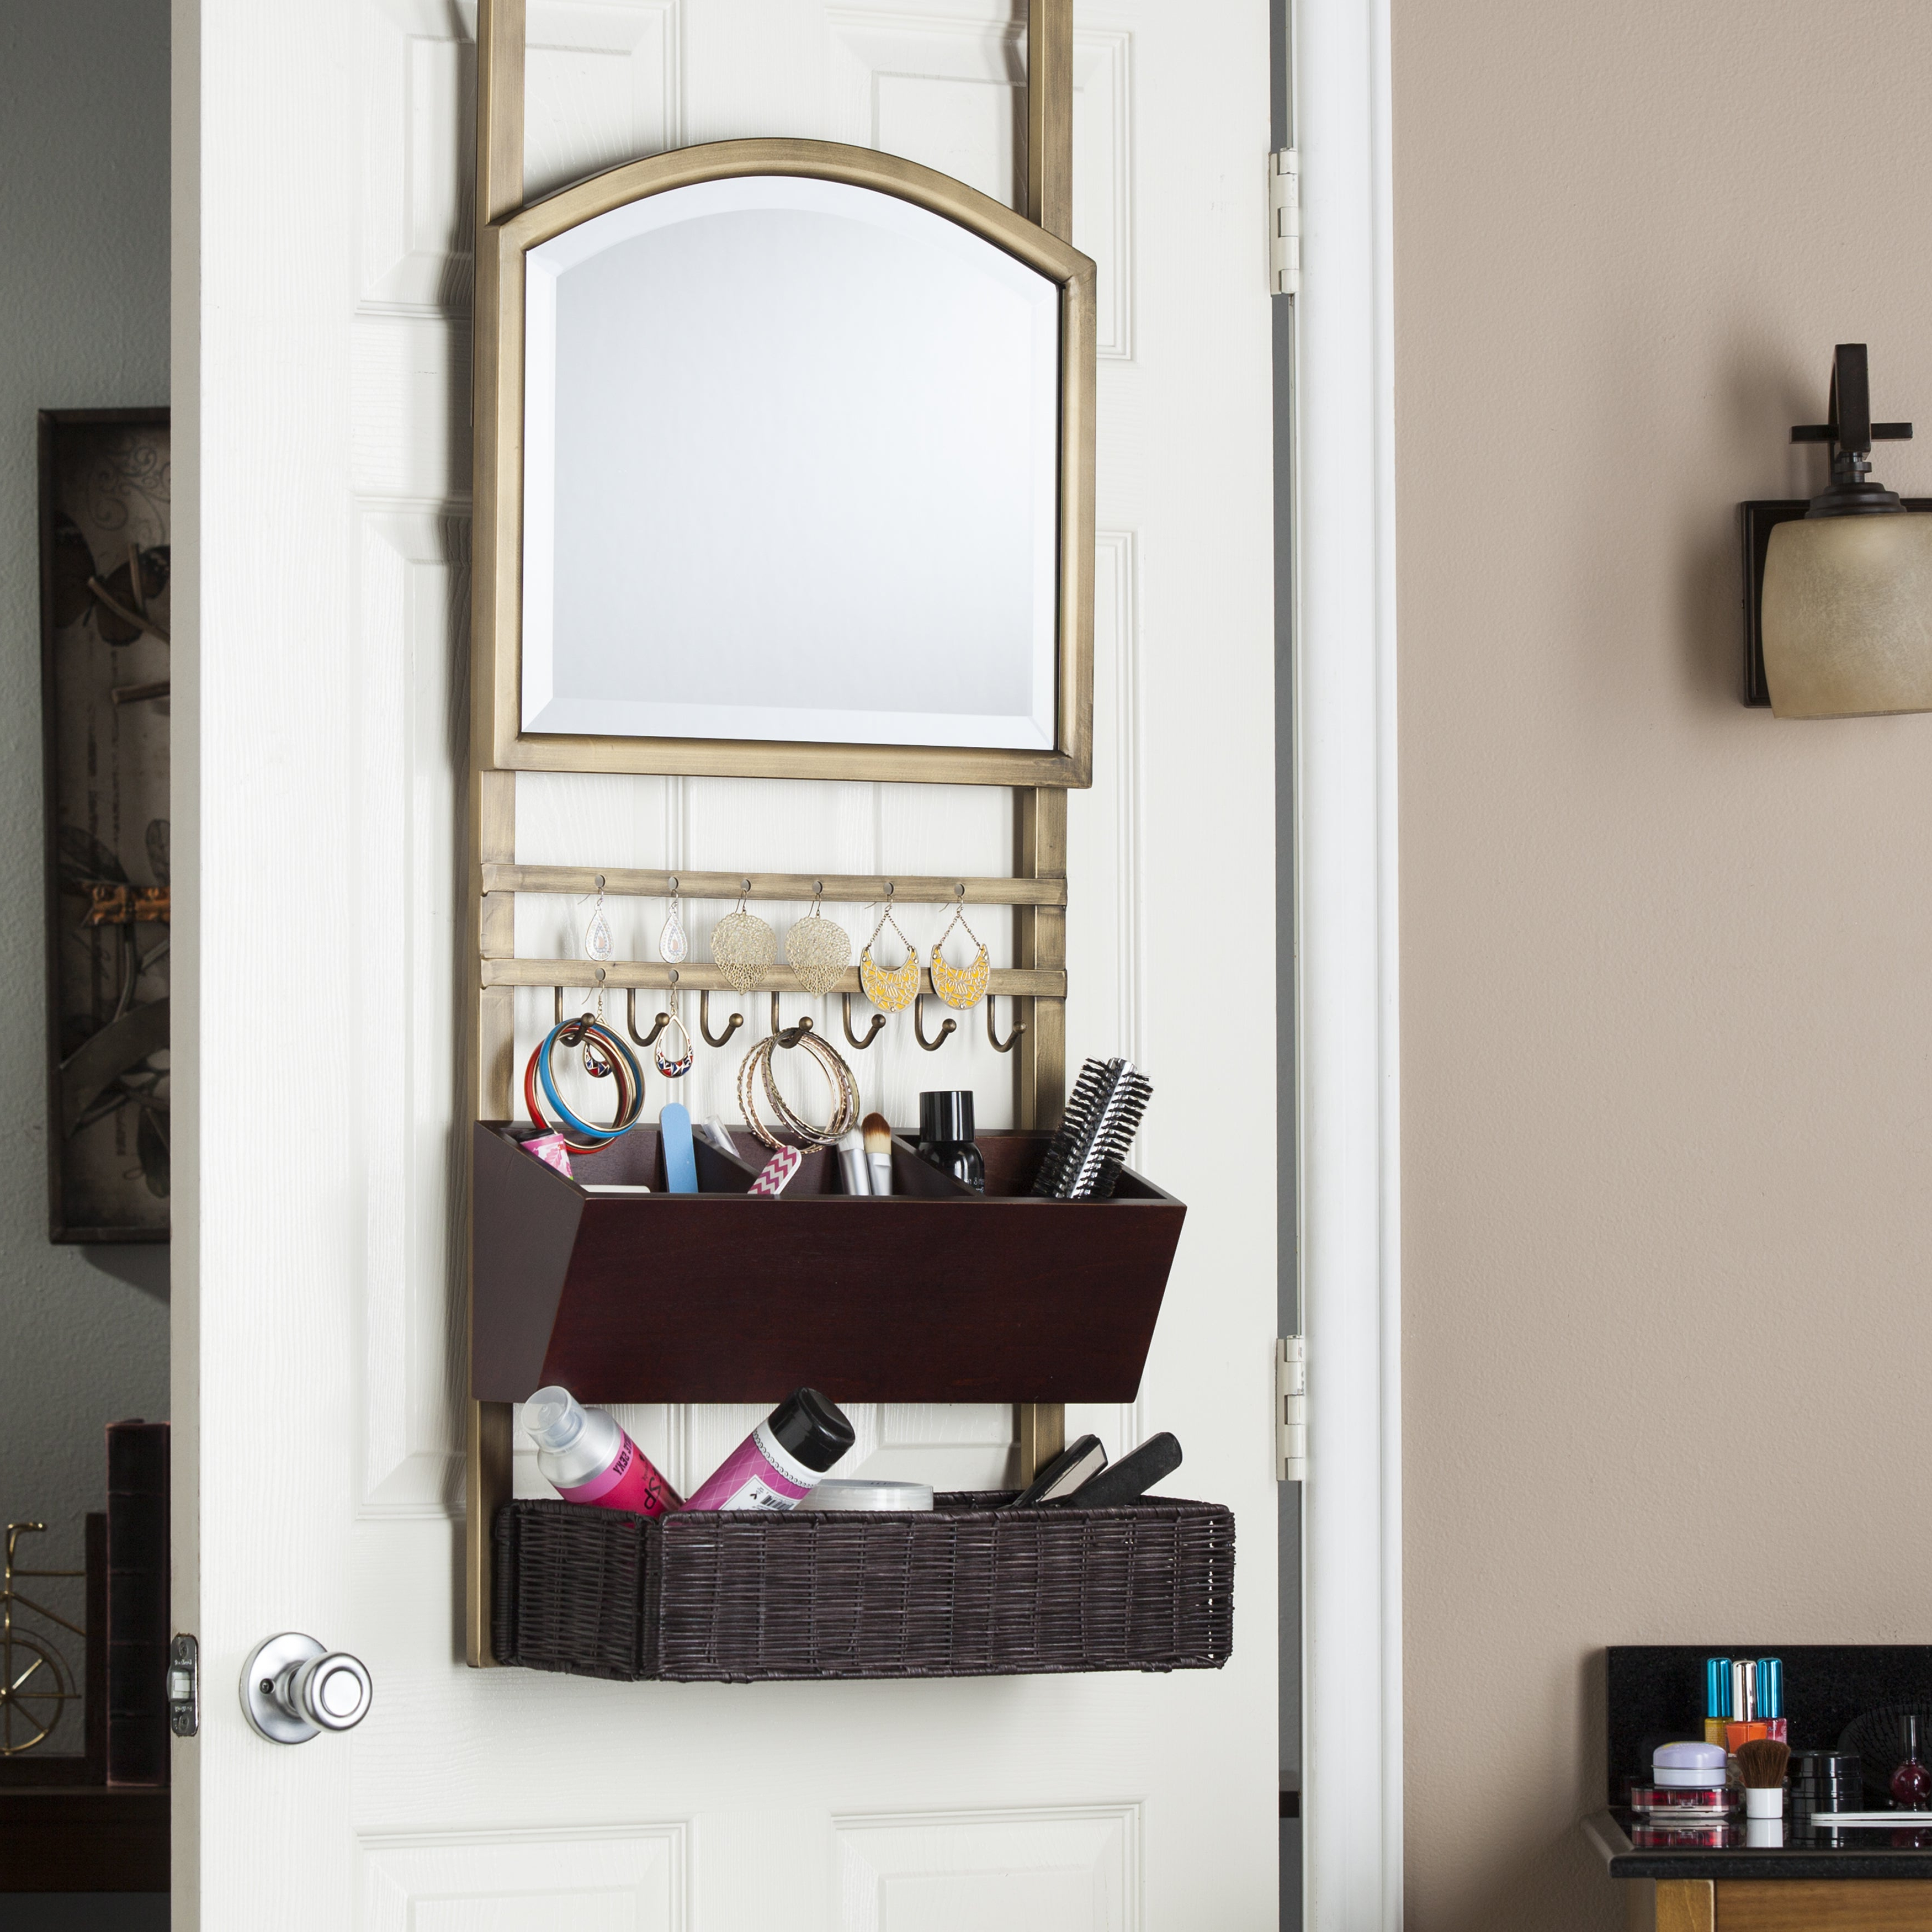 Shop Online At Overstock Regarding Well Known Arch Top Vertical Wall Mirrors (View 17 of 20)